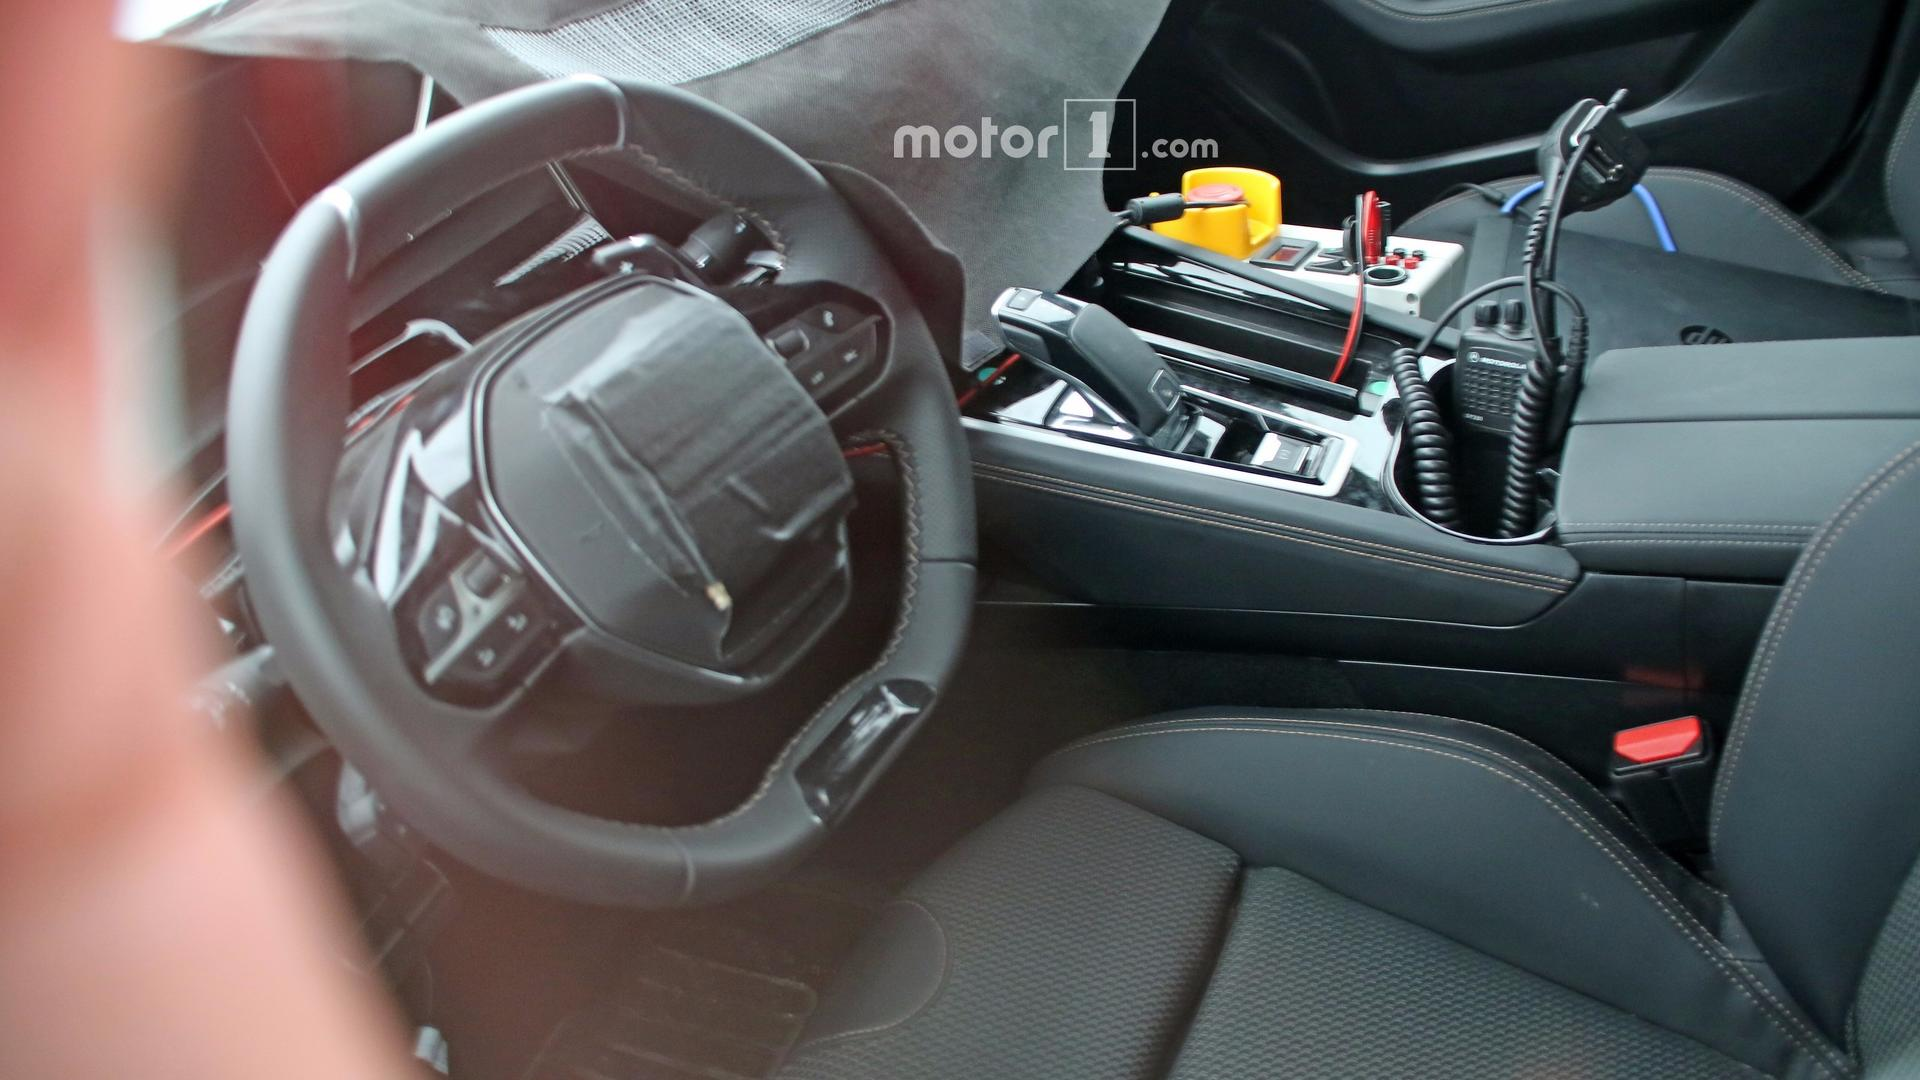 Nya Interieur 2018 Peugeot 508 Spied Inside For The First Time